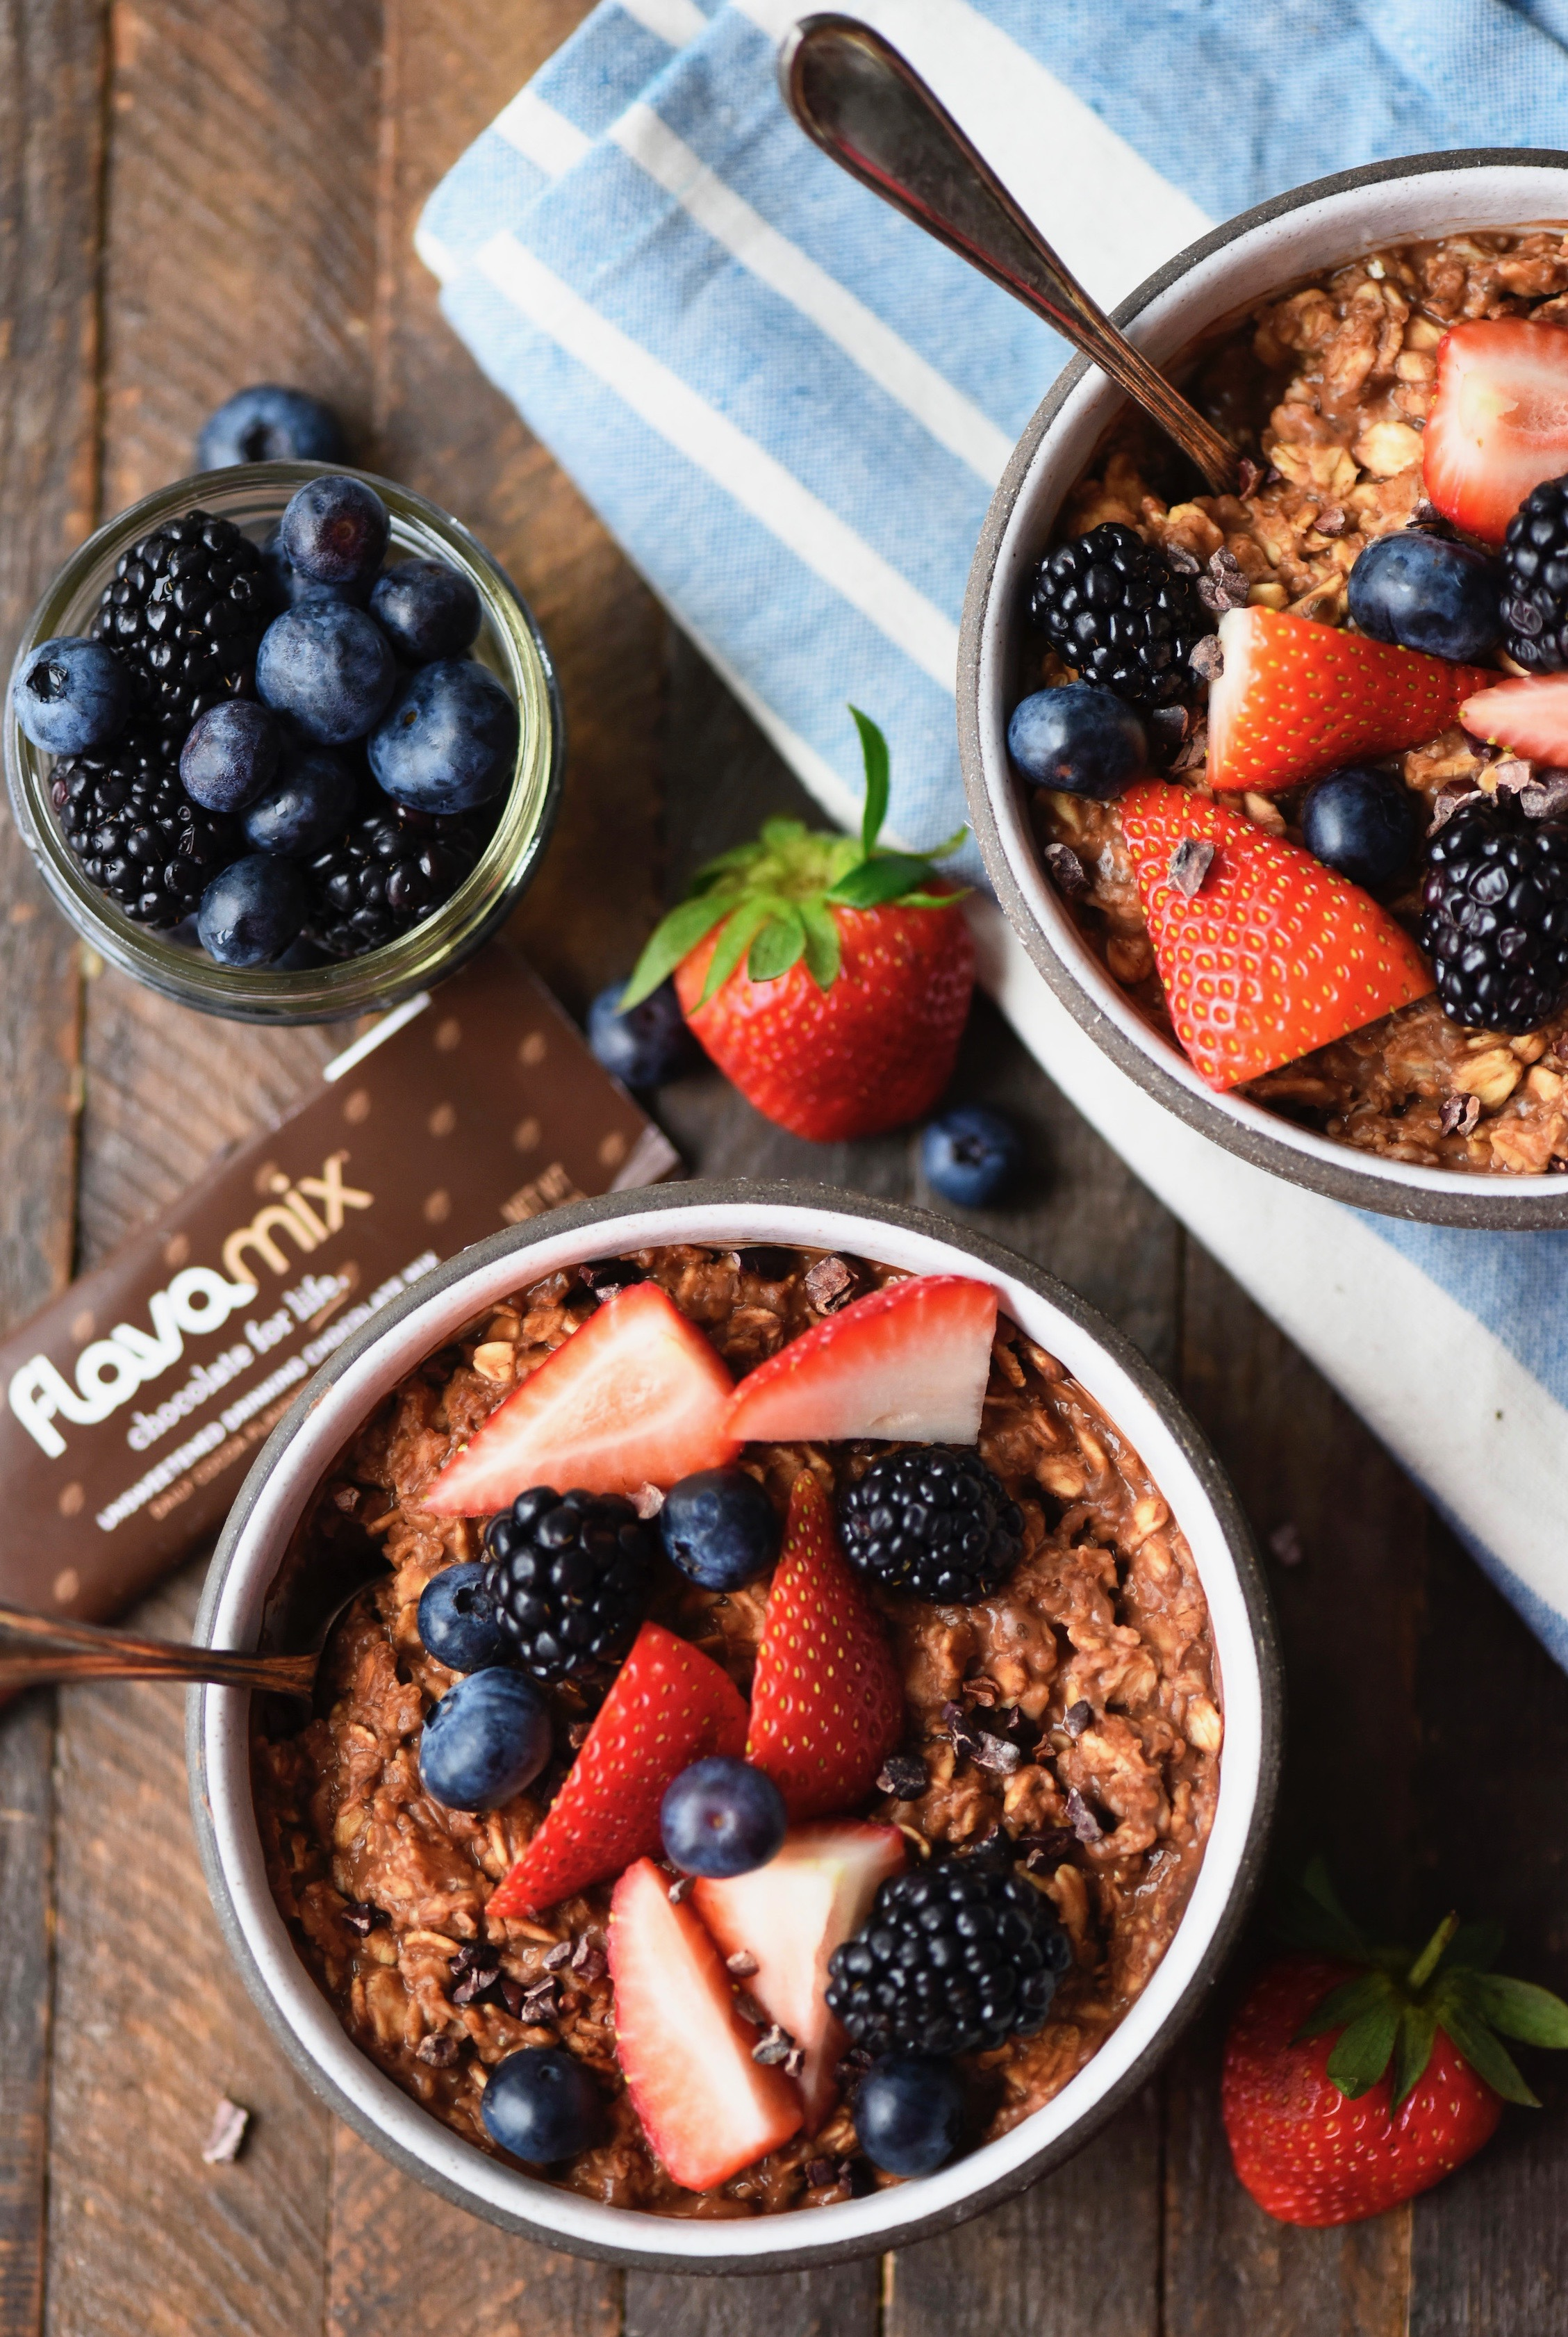 Chocolate Oatmeal with Fresh Berries, FlavaMix Unsweetened Drinking Chocolate, 900mg Cocoa Flavanols